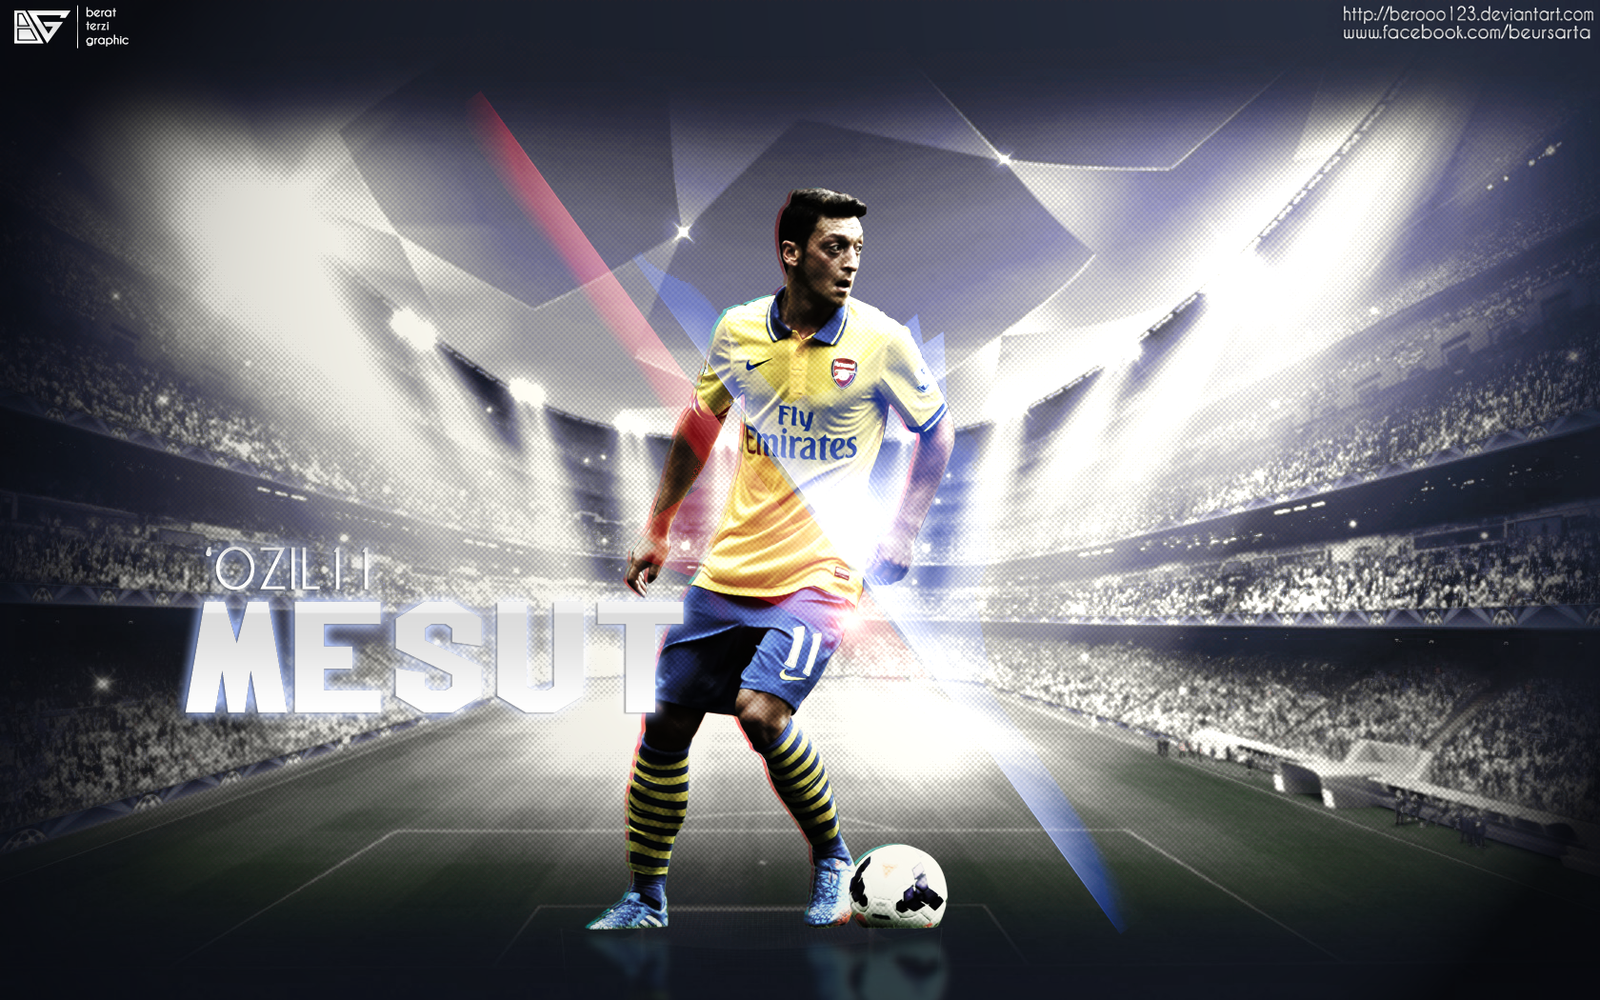 Mesut Ozil Wallpaper By Berooo123 On DeviantArt